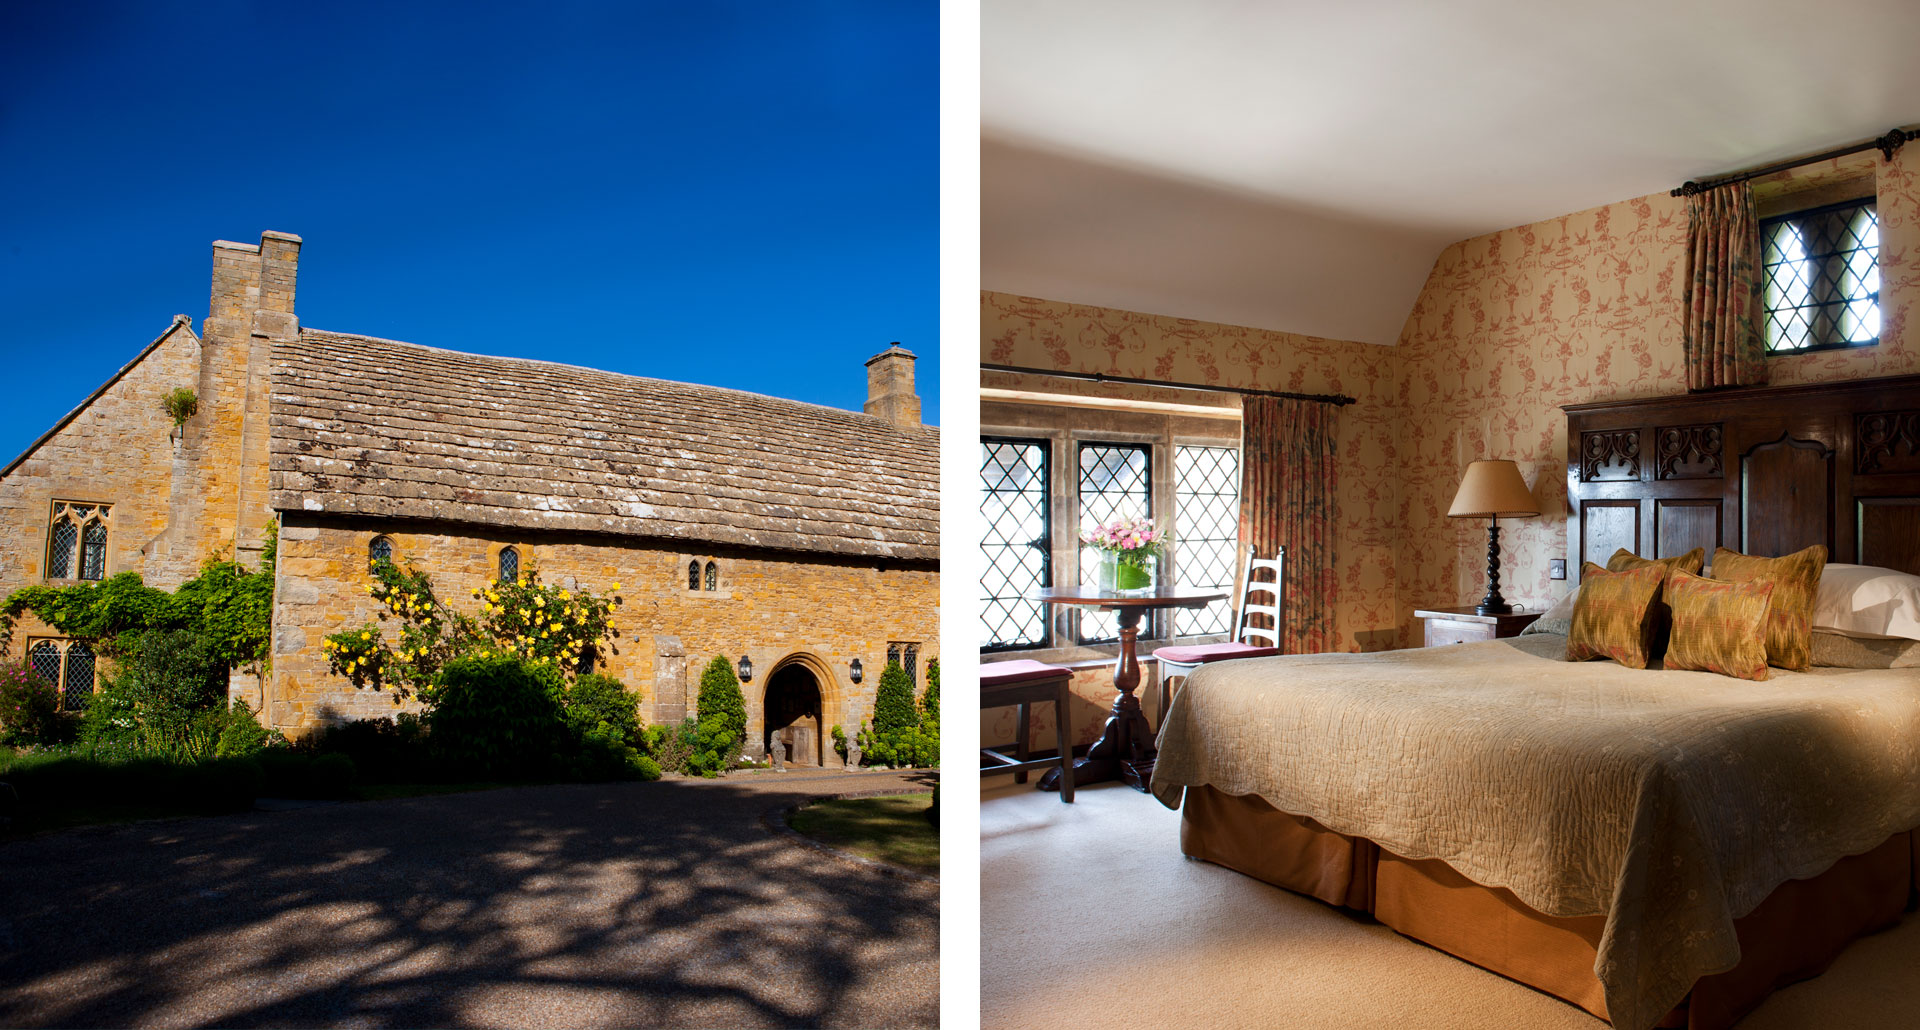 Exquisite English Country Hotels — The Agenda by Tablet Hotels